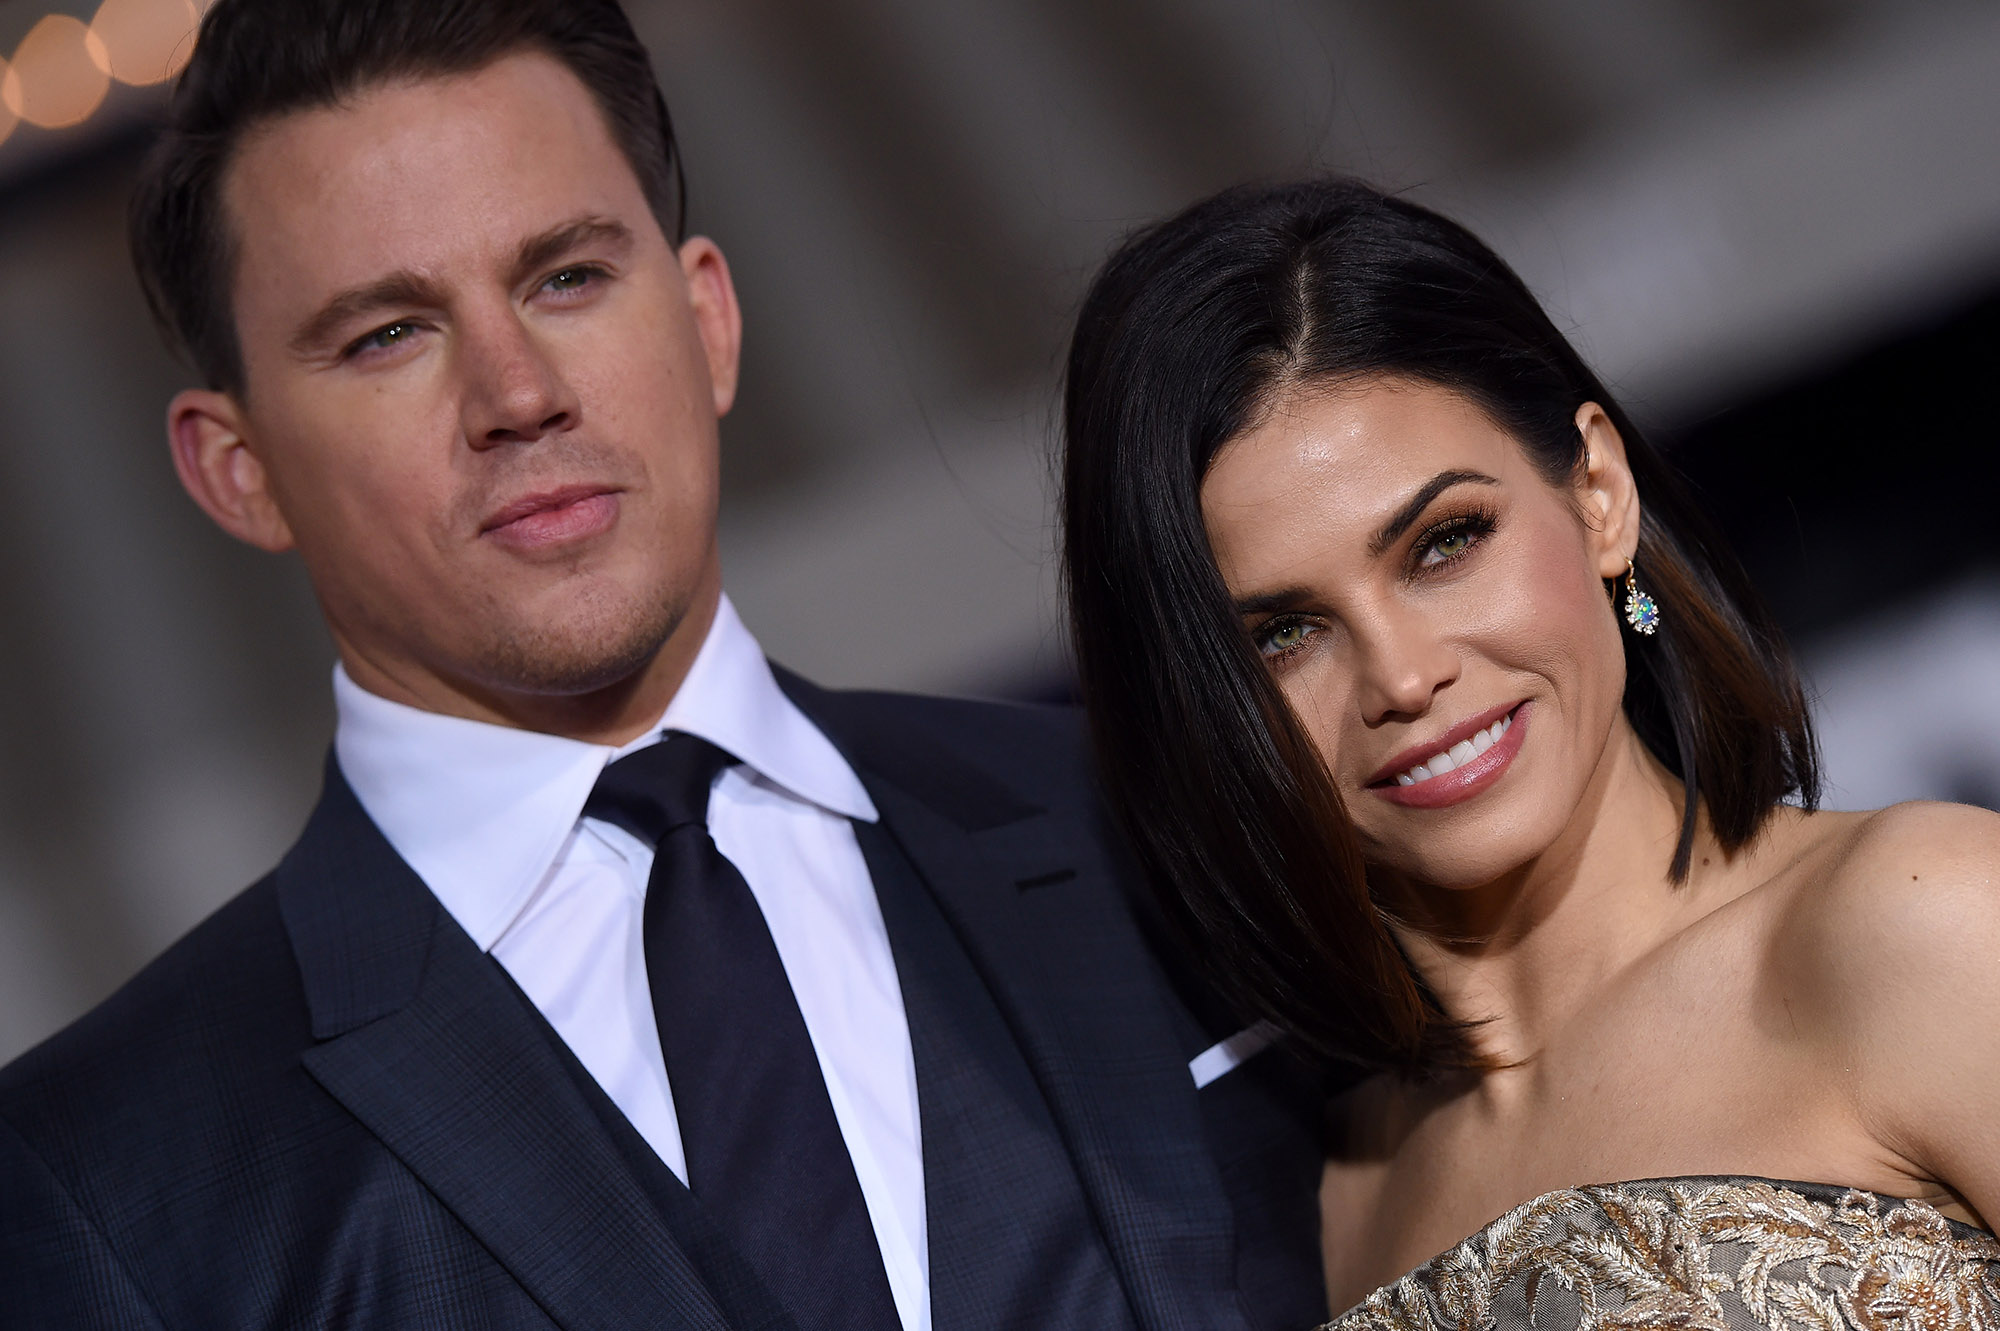 Channing Tatum and Jenna Dewan-Tatum arrive at the premiere of Universal Pictures' 'Hail, Caesar!' at Regency Village Theatre on February 1, 2016 in Westwood, California.  (Photo by Axelle/Bauer-Griffin/FilmMagic)